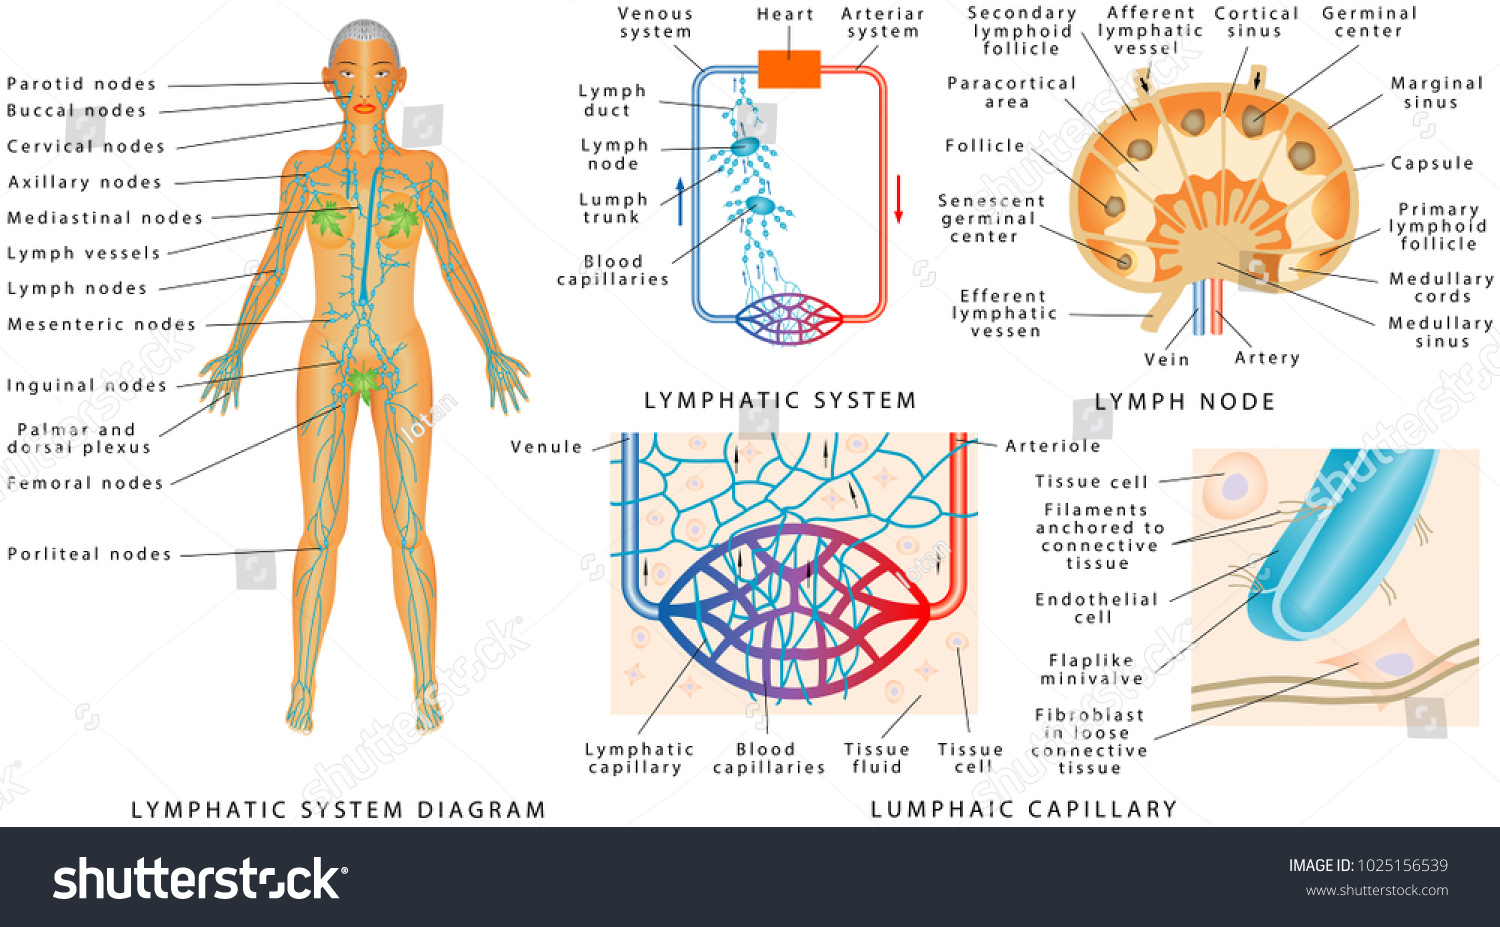 Lymphatic System Lymphatic Diagram Human Structure Stock Vector